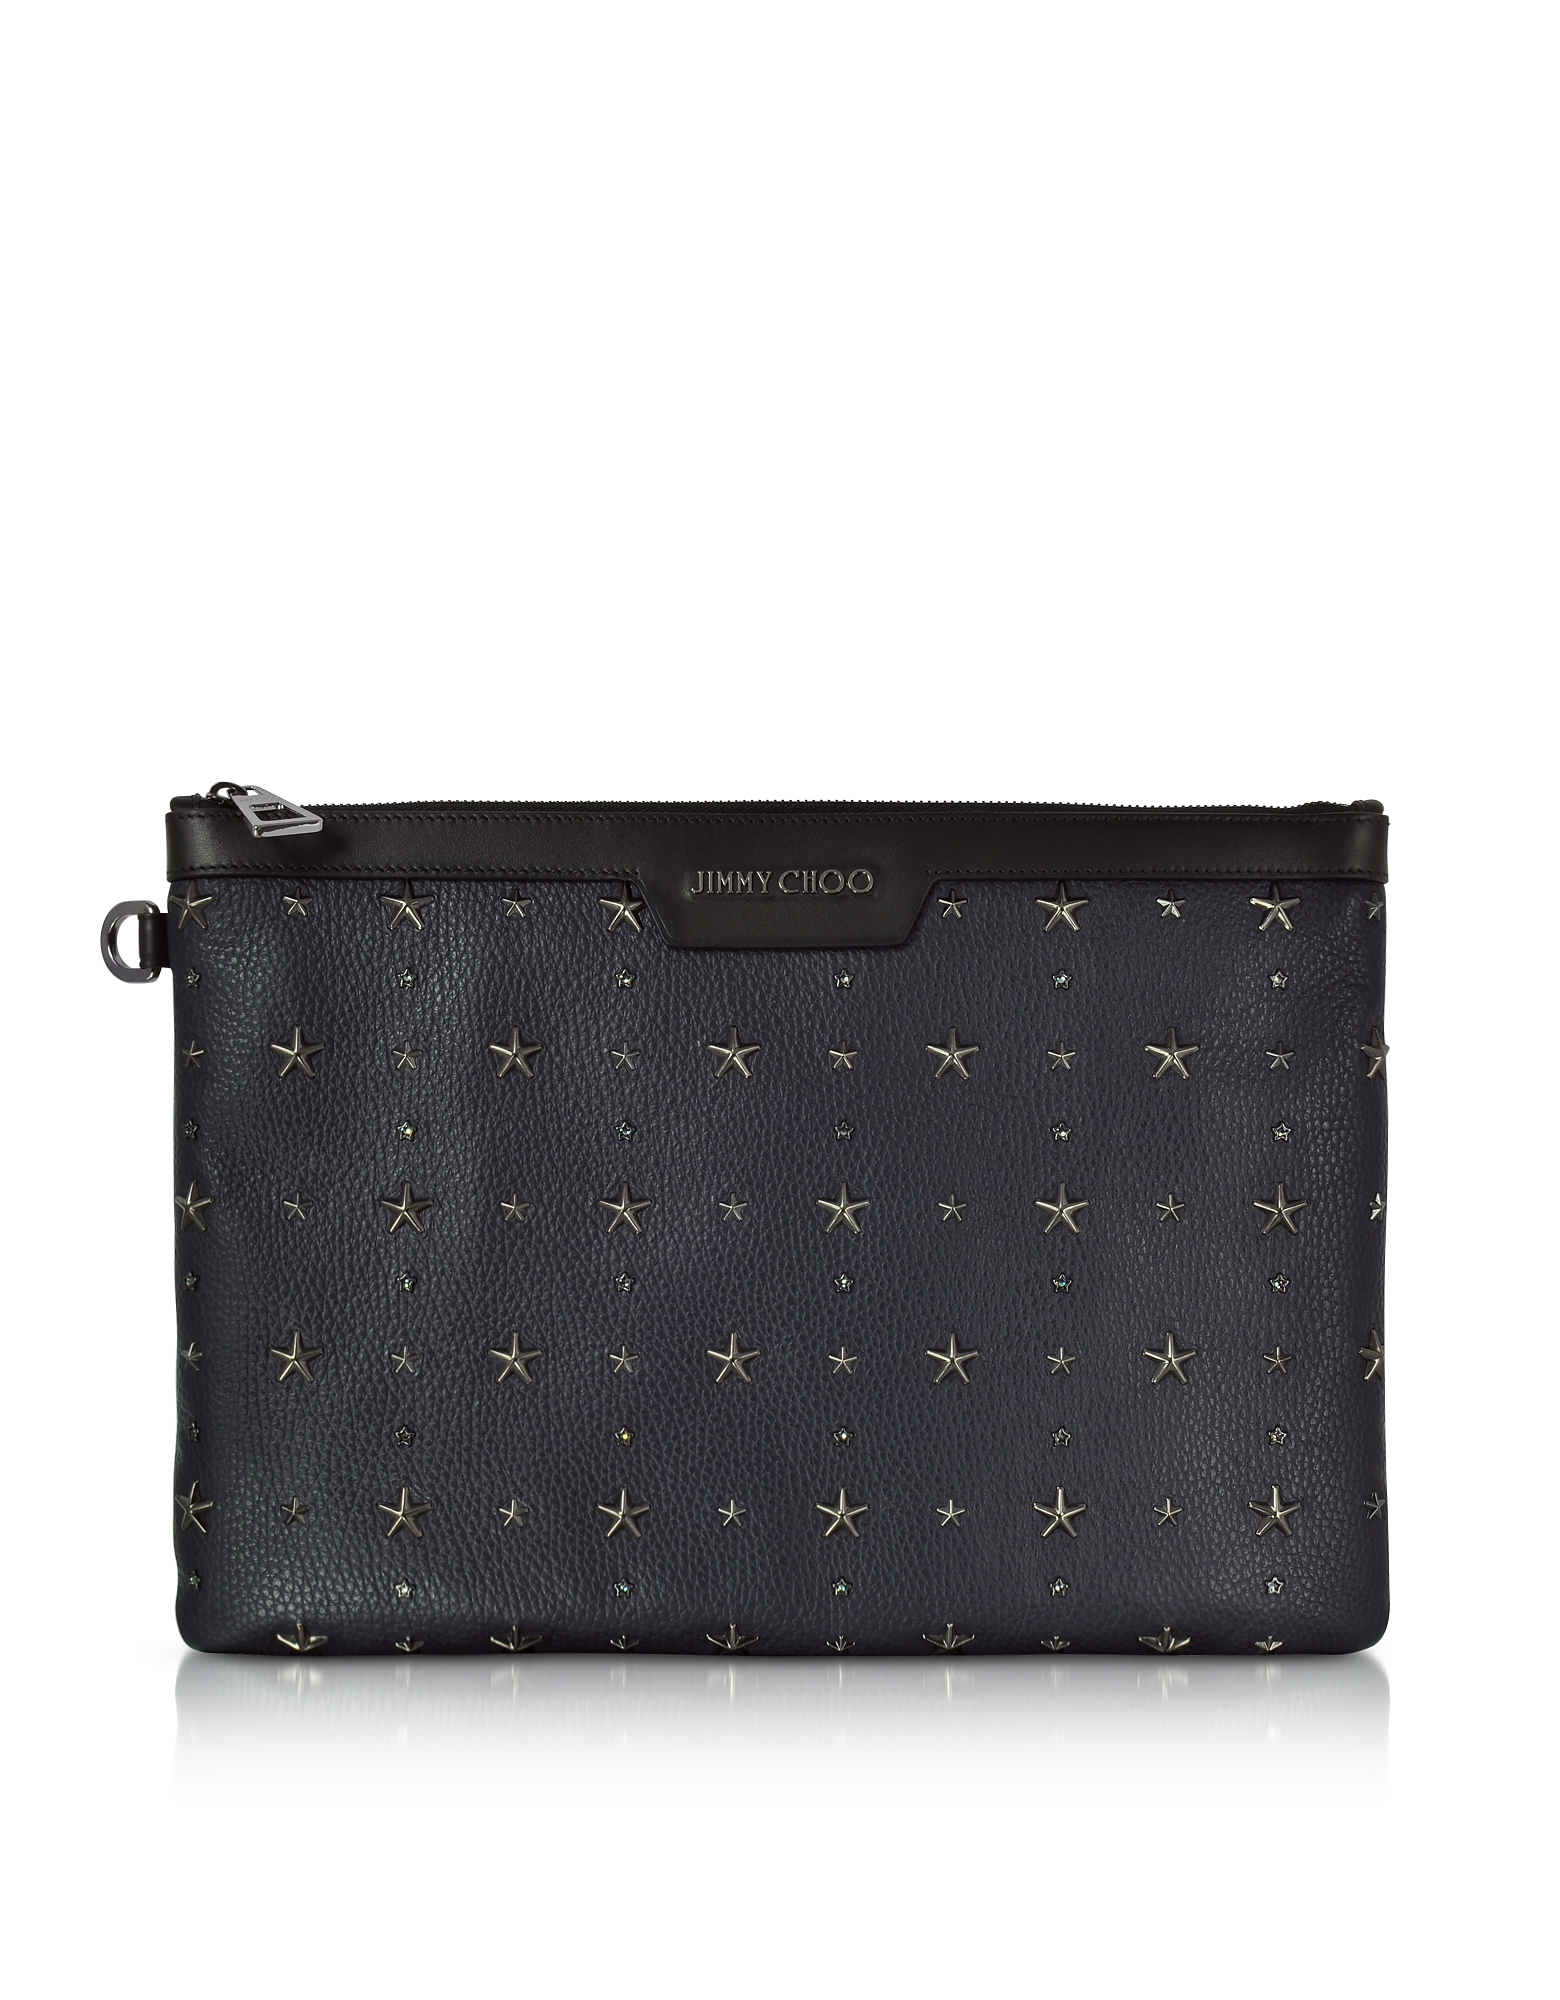 Jimmy Choo Handbags, Derek Navy Blue and Slate Grainy Leather Clutch w/Crystals Star